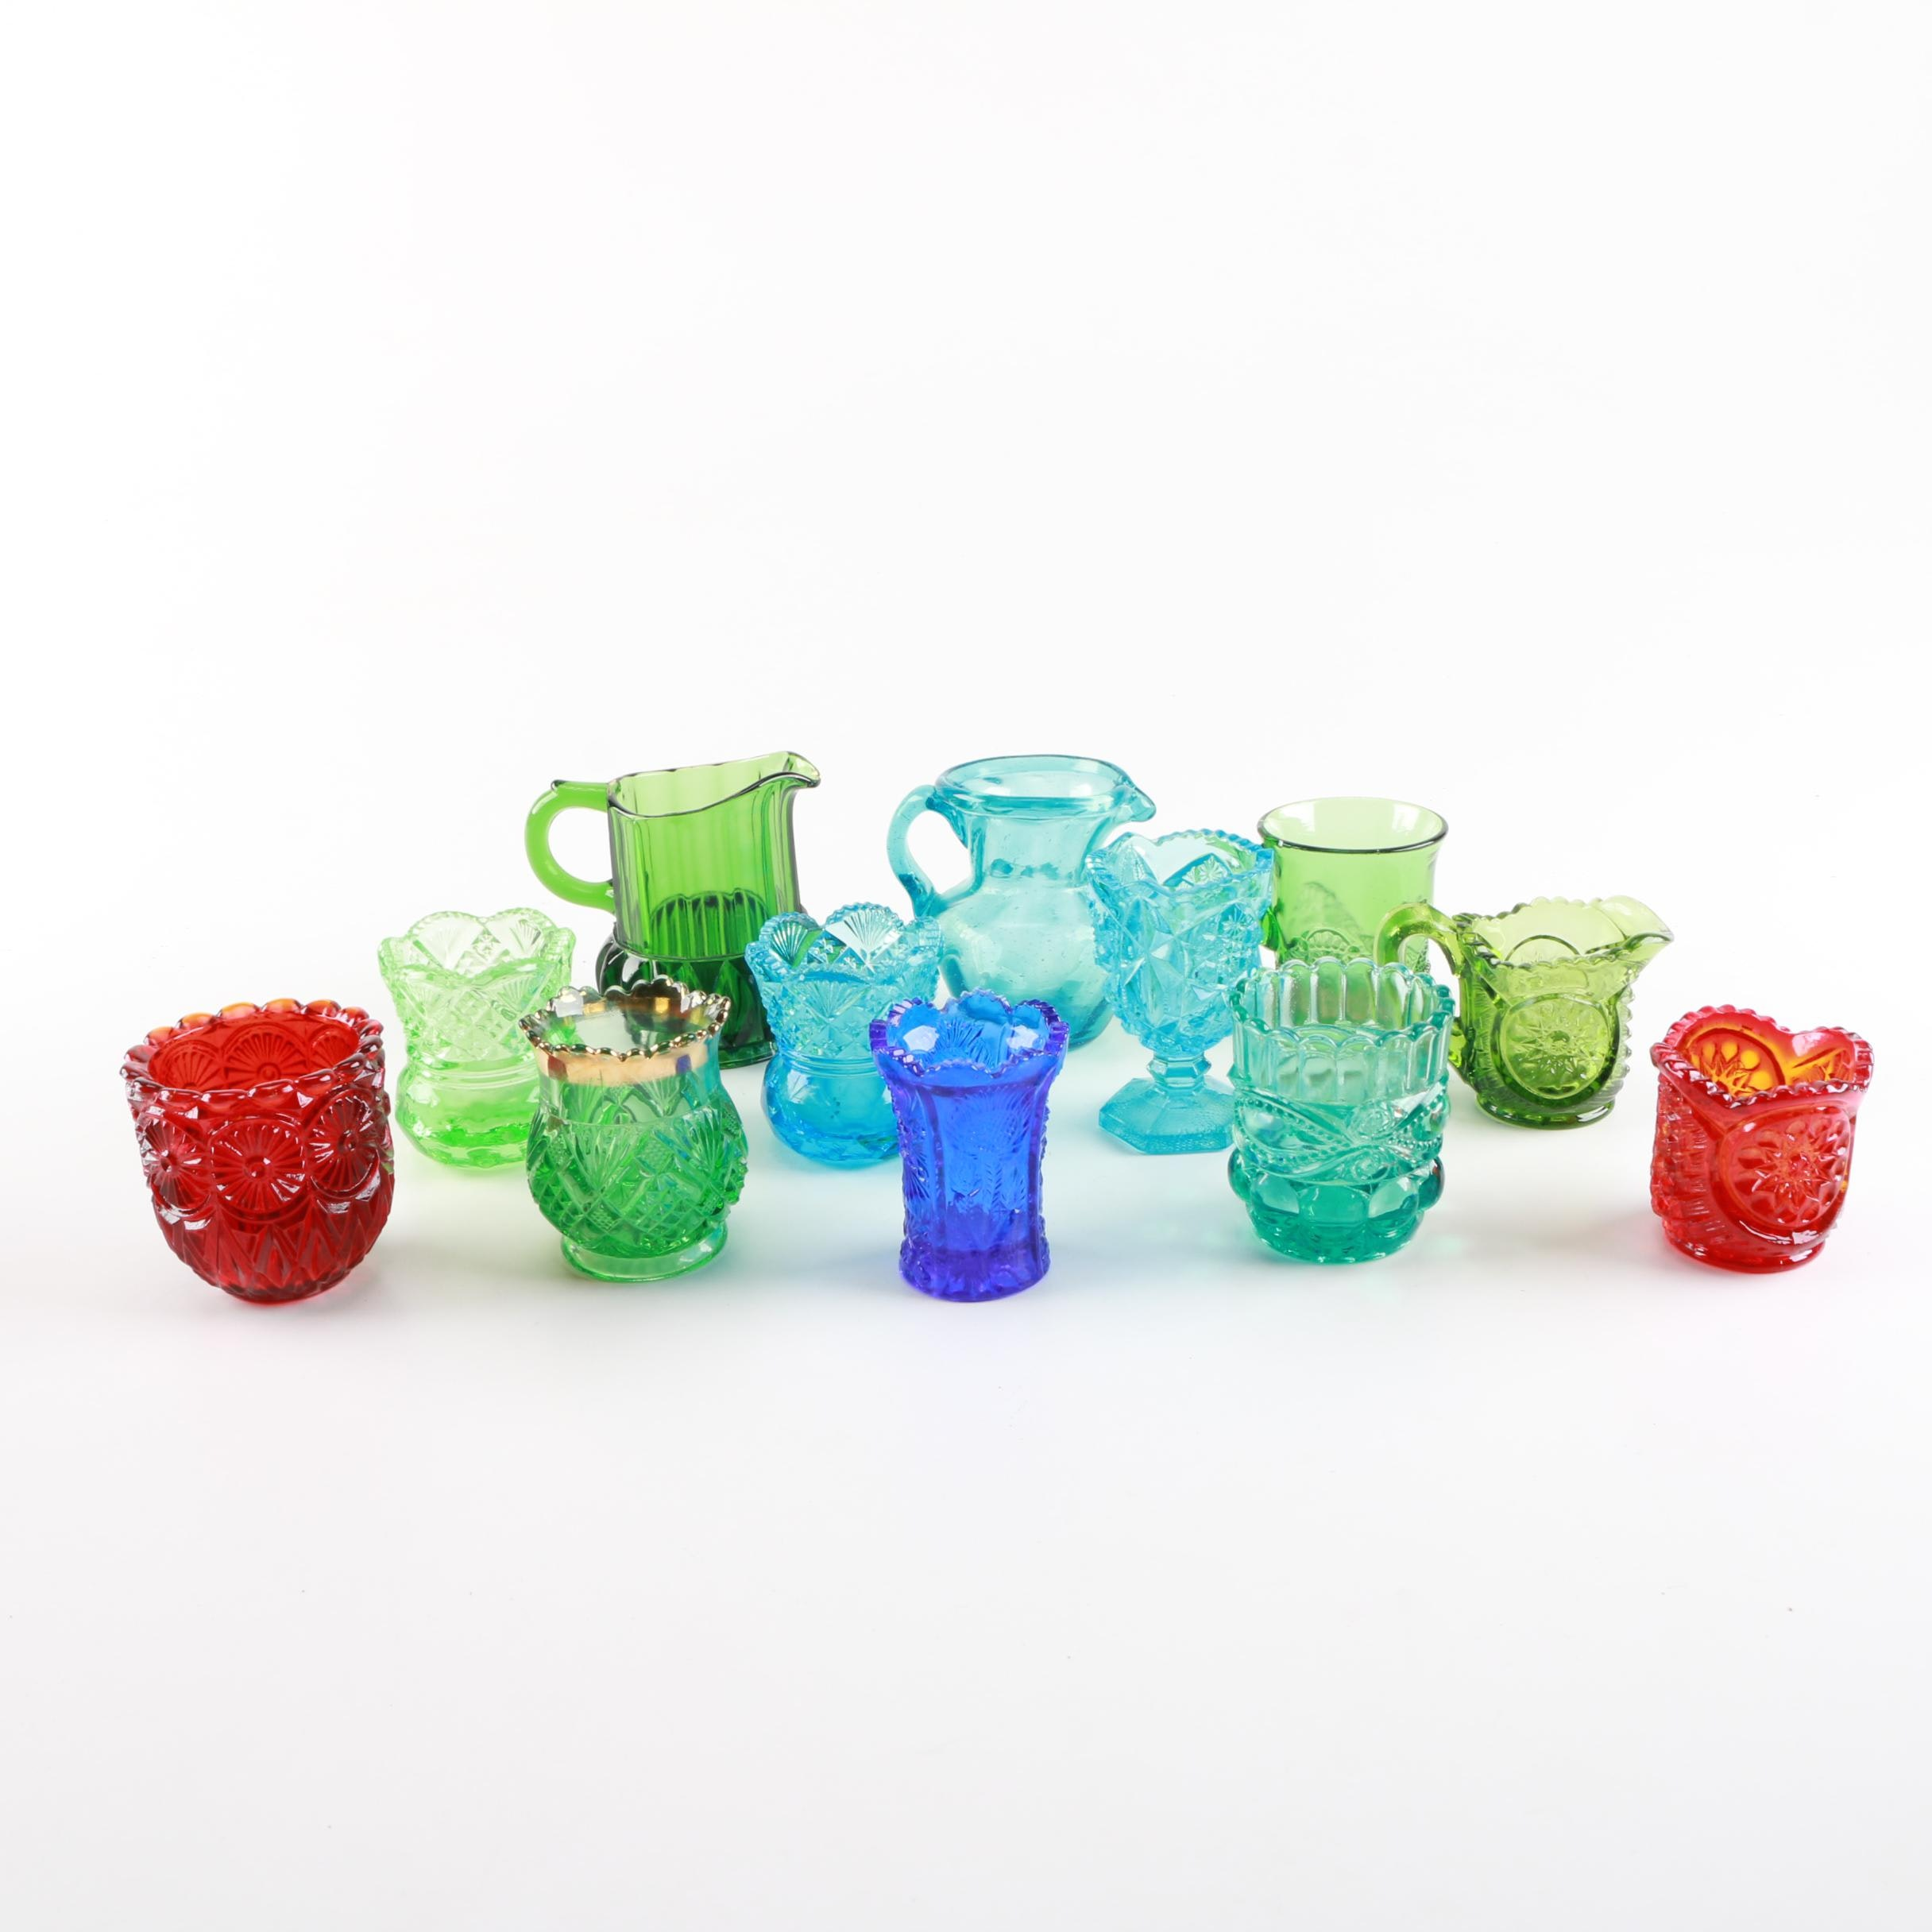 Colorful Smaller Glassware Pieces